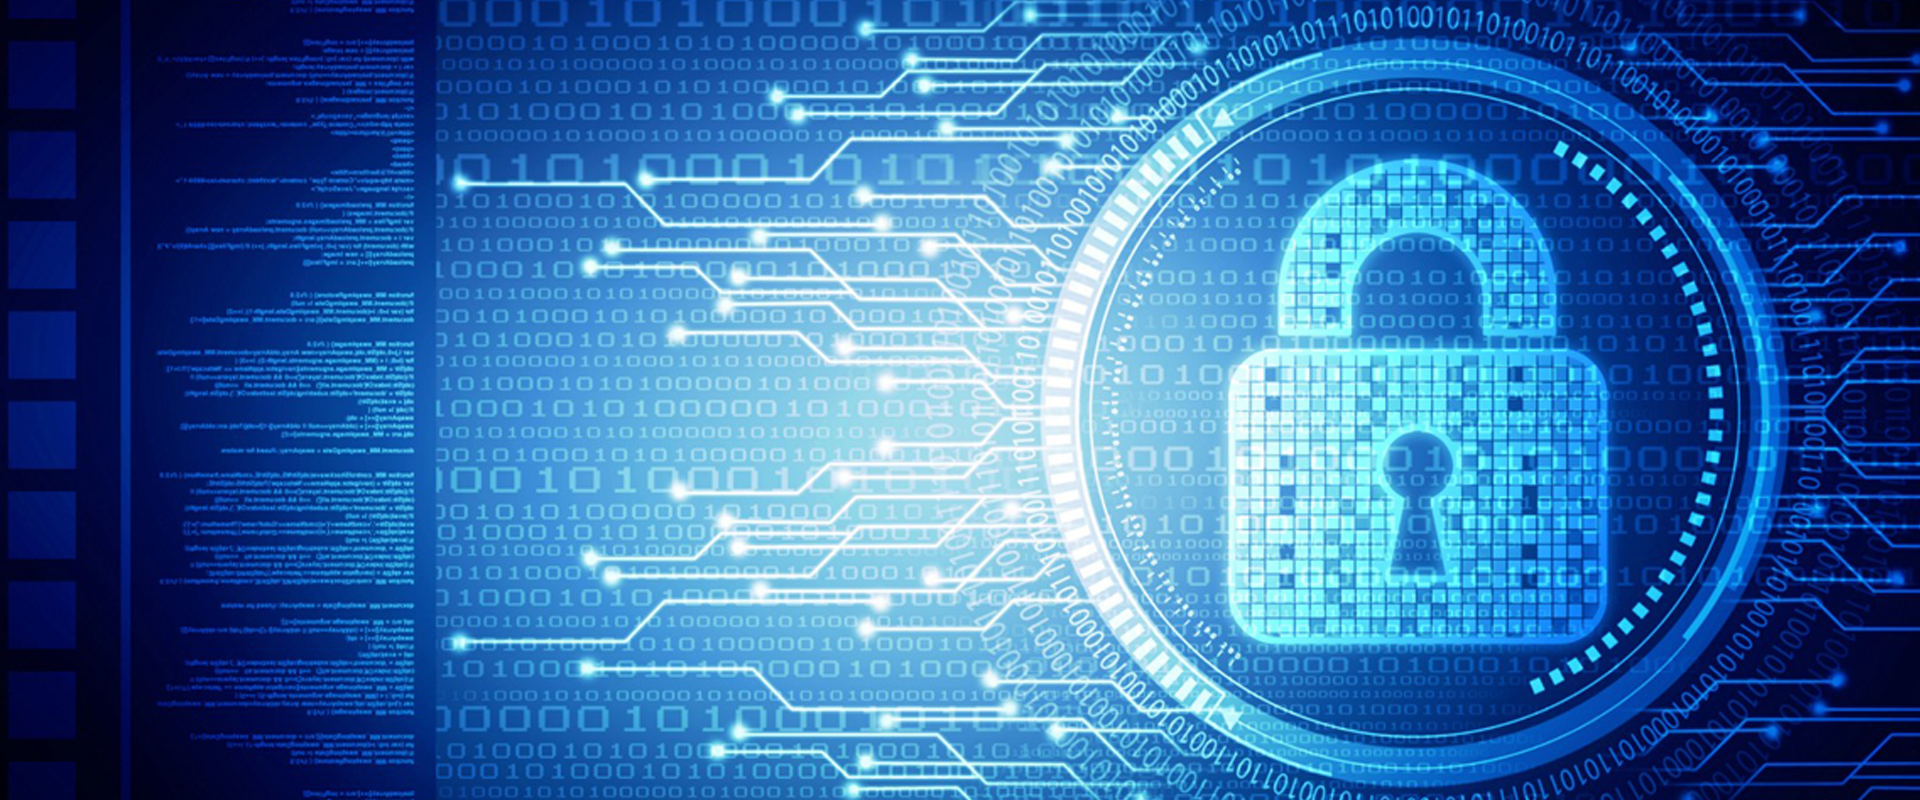 difference-between-cyber-security-and-data-security